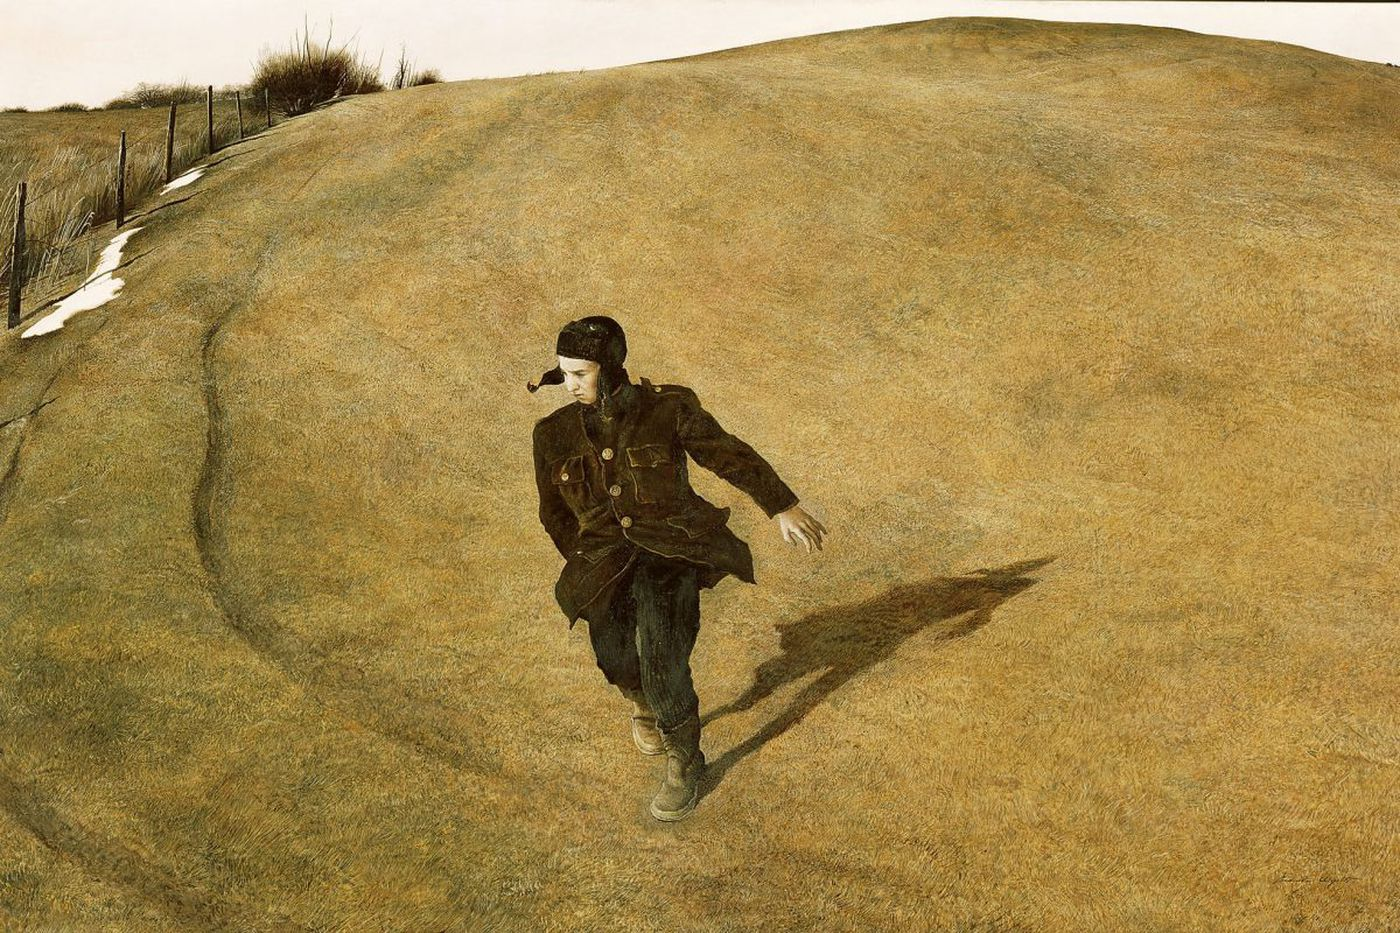 Big show at Brandywine goes way beyond 'Christina' into Andrew Wyeth's lonely world